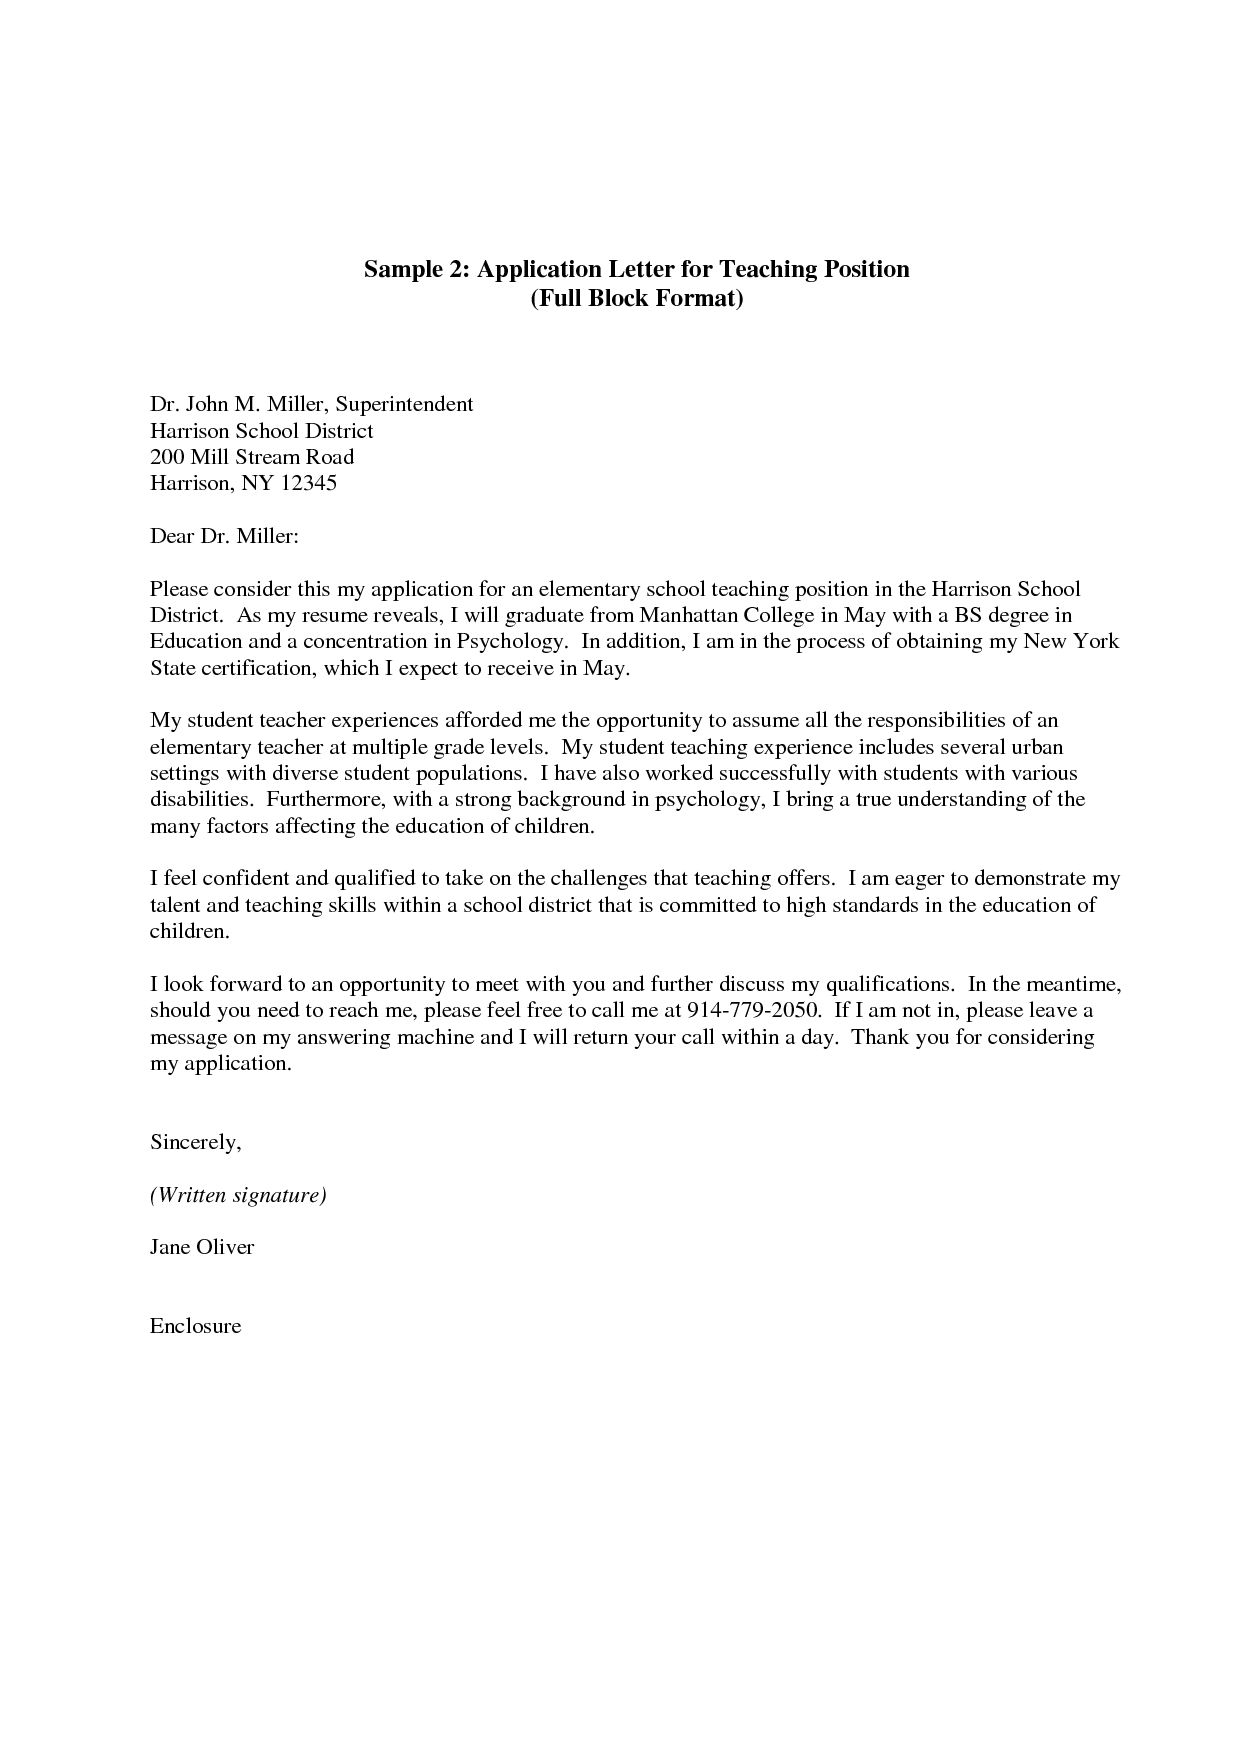 teacher cover letter application for letters to writing resume and college soccer coach Resume Writing A Teacher Resume And Cover Letter